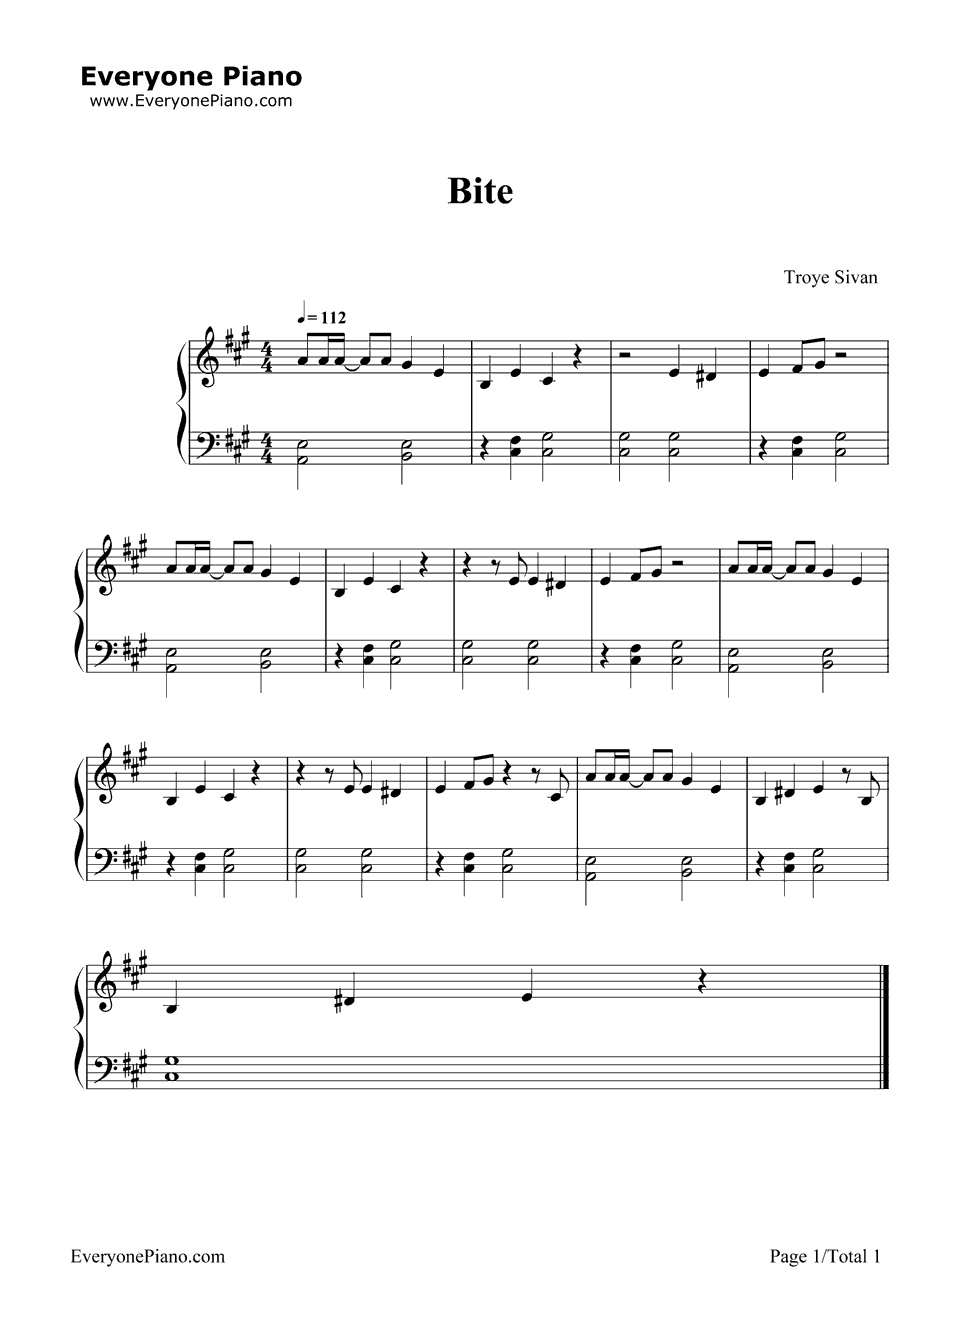 troye sivan sheet music